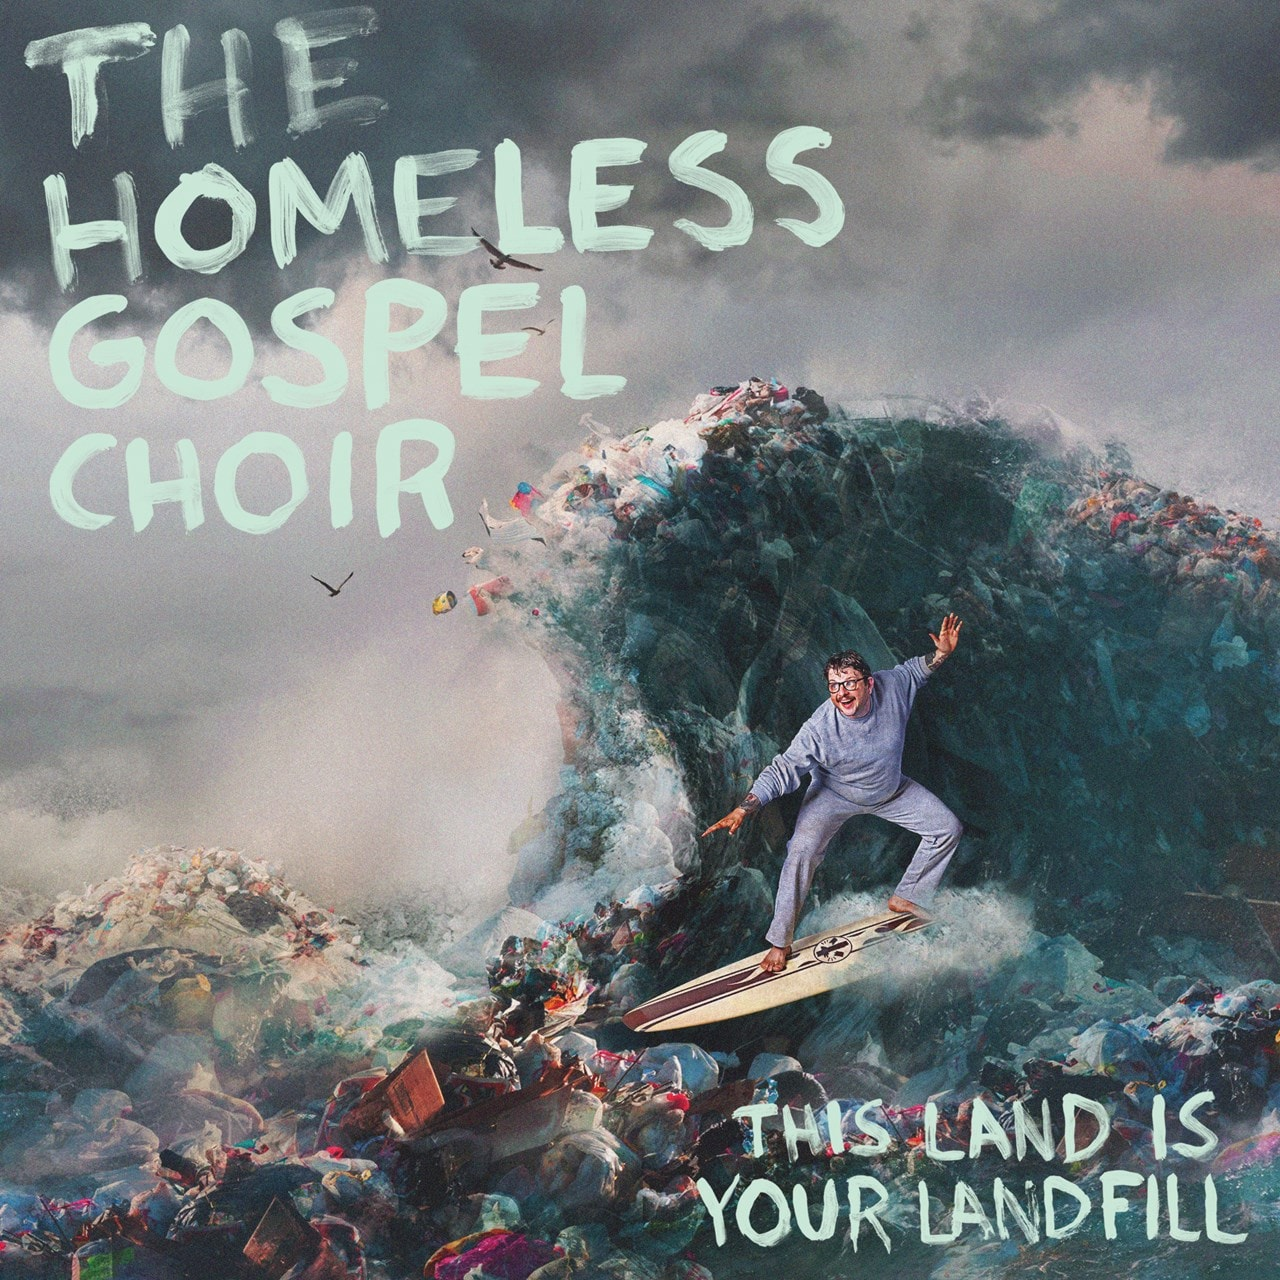 This Land Is Your Landfill - 1